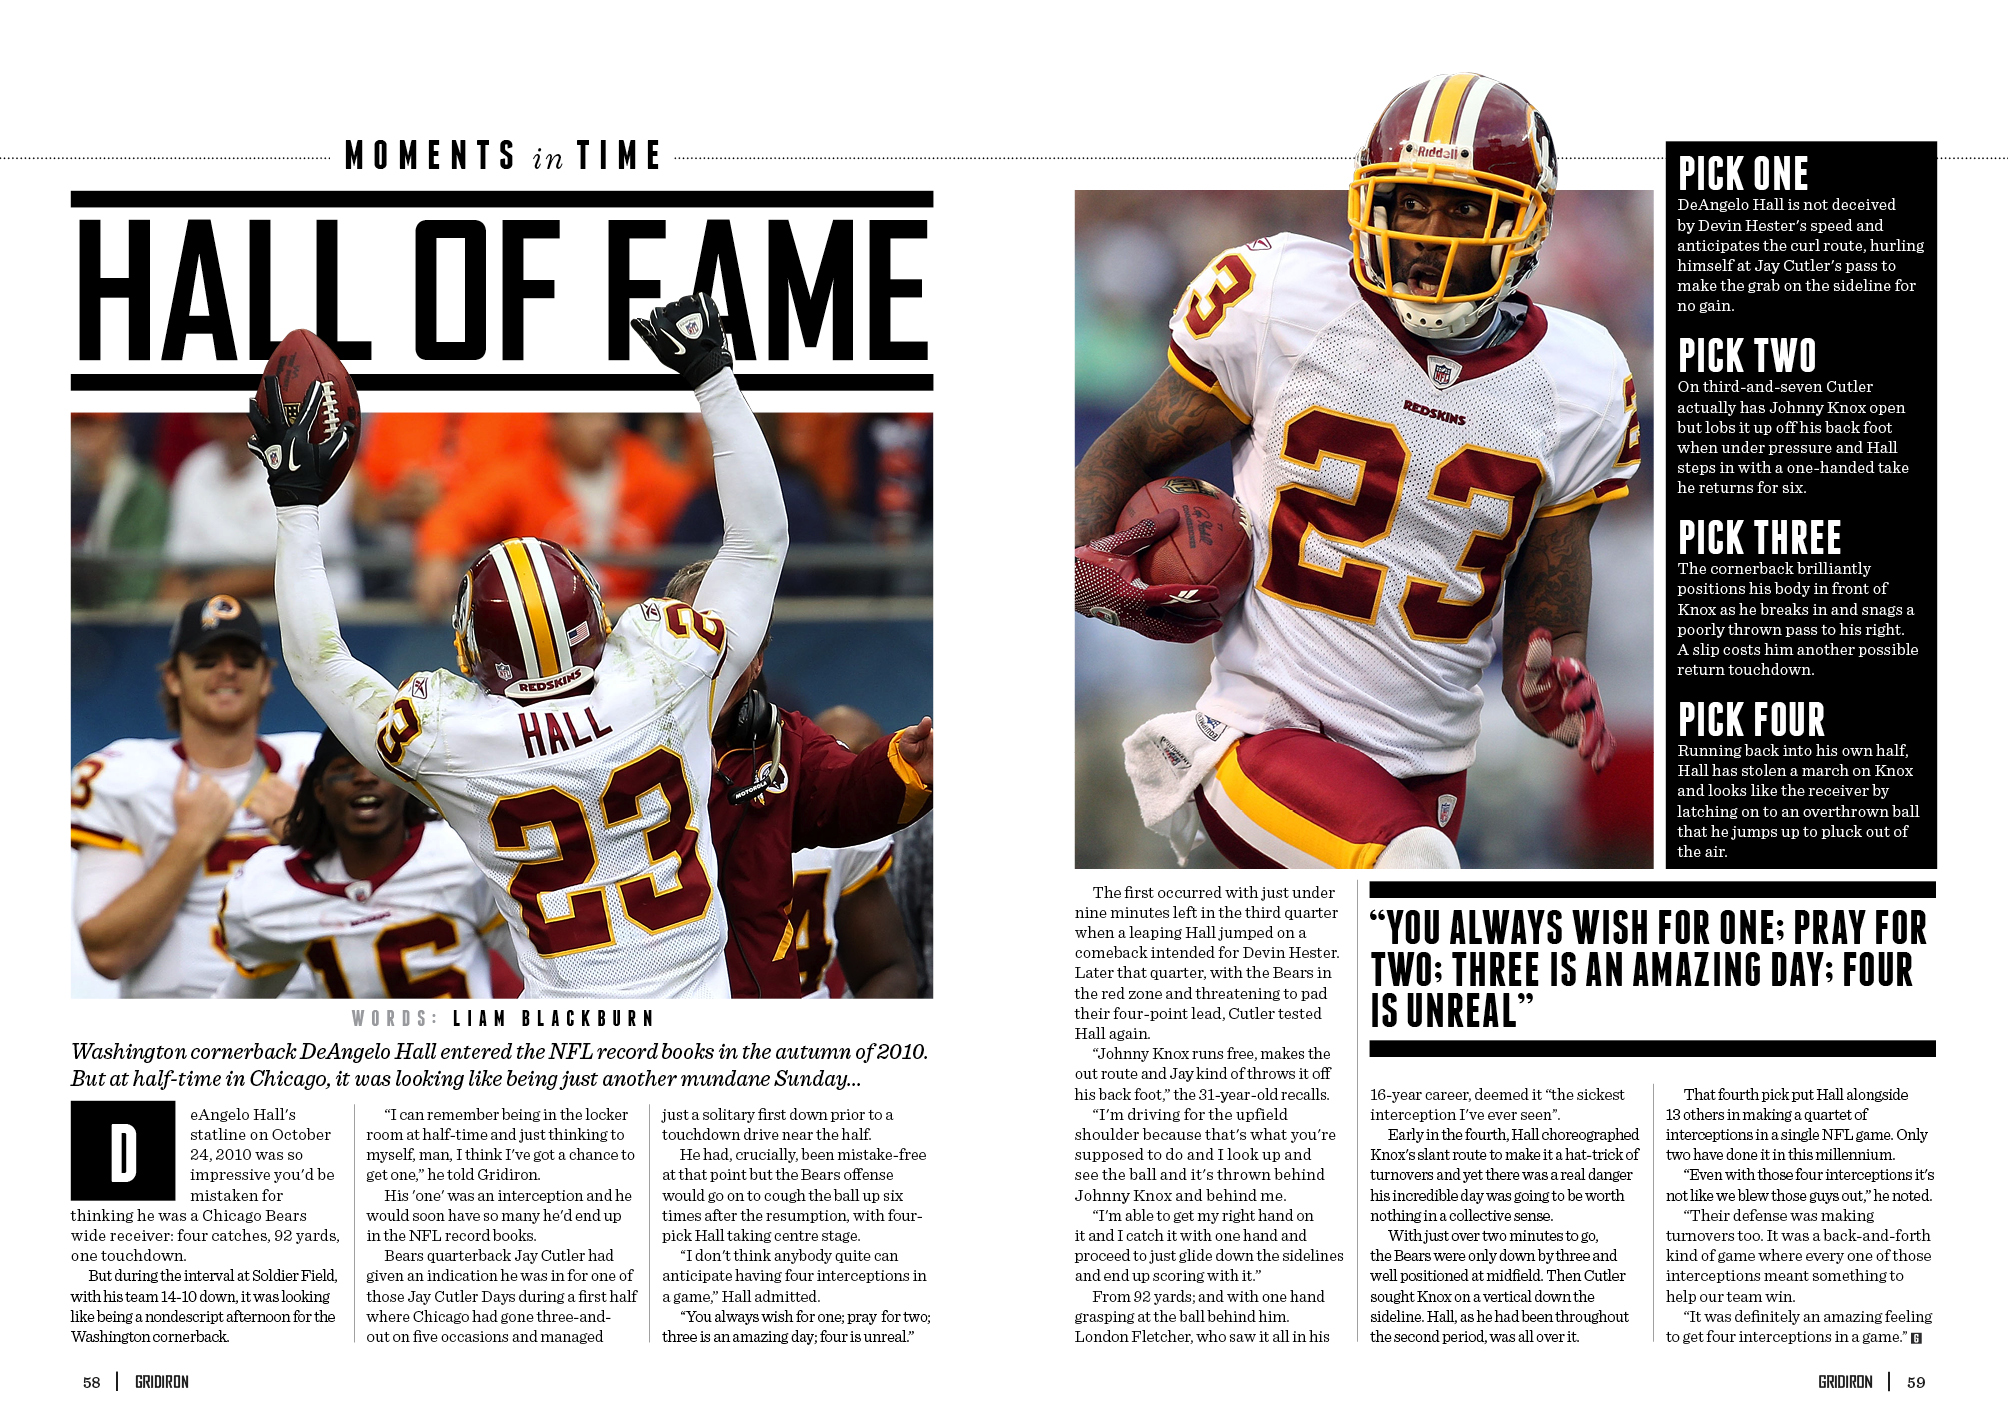 DeAngelo Hall Issue XVII spread